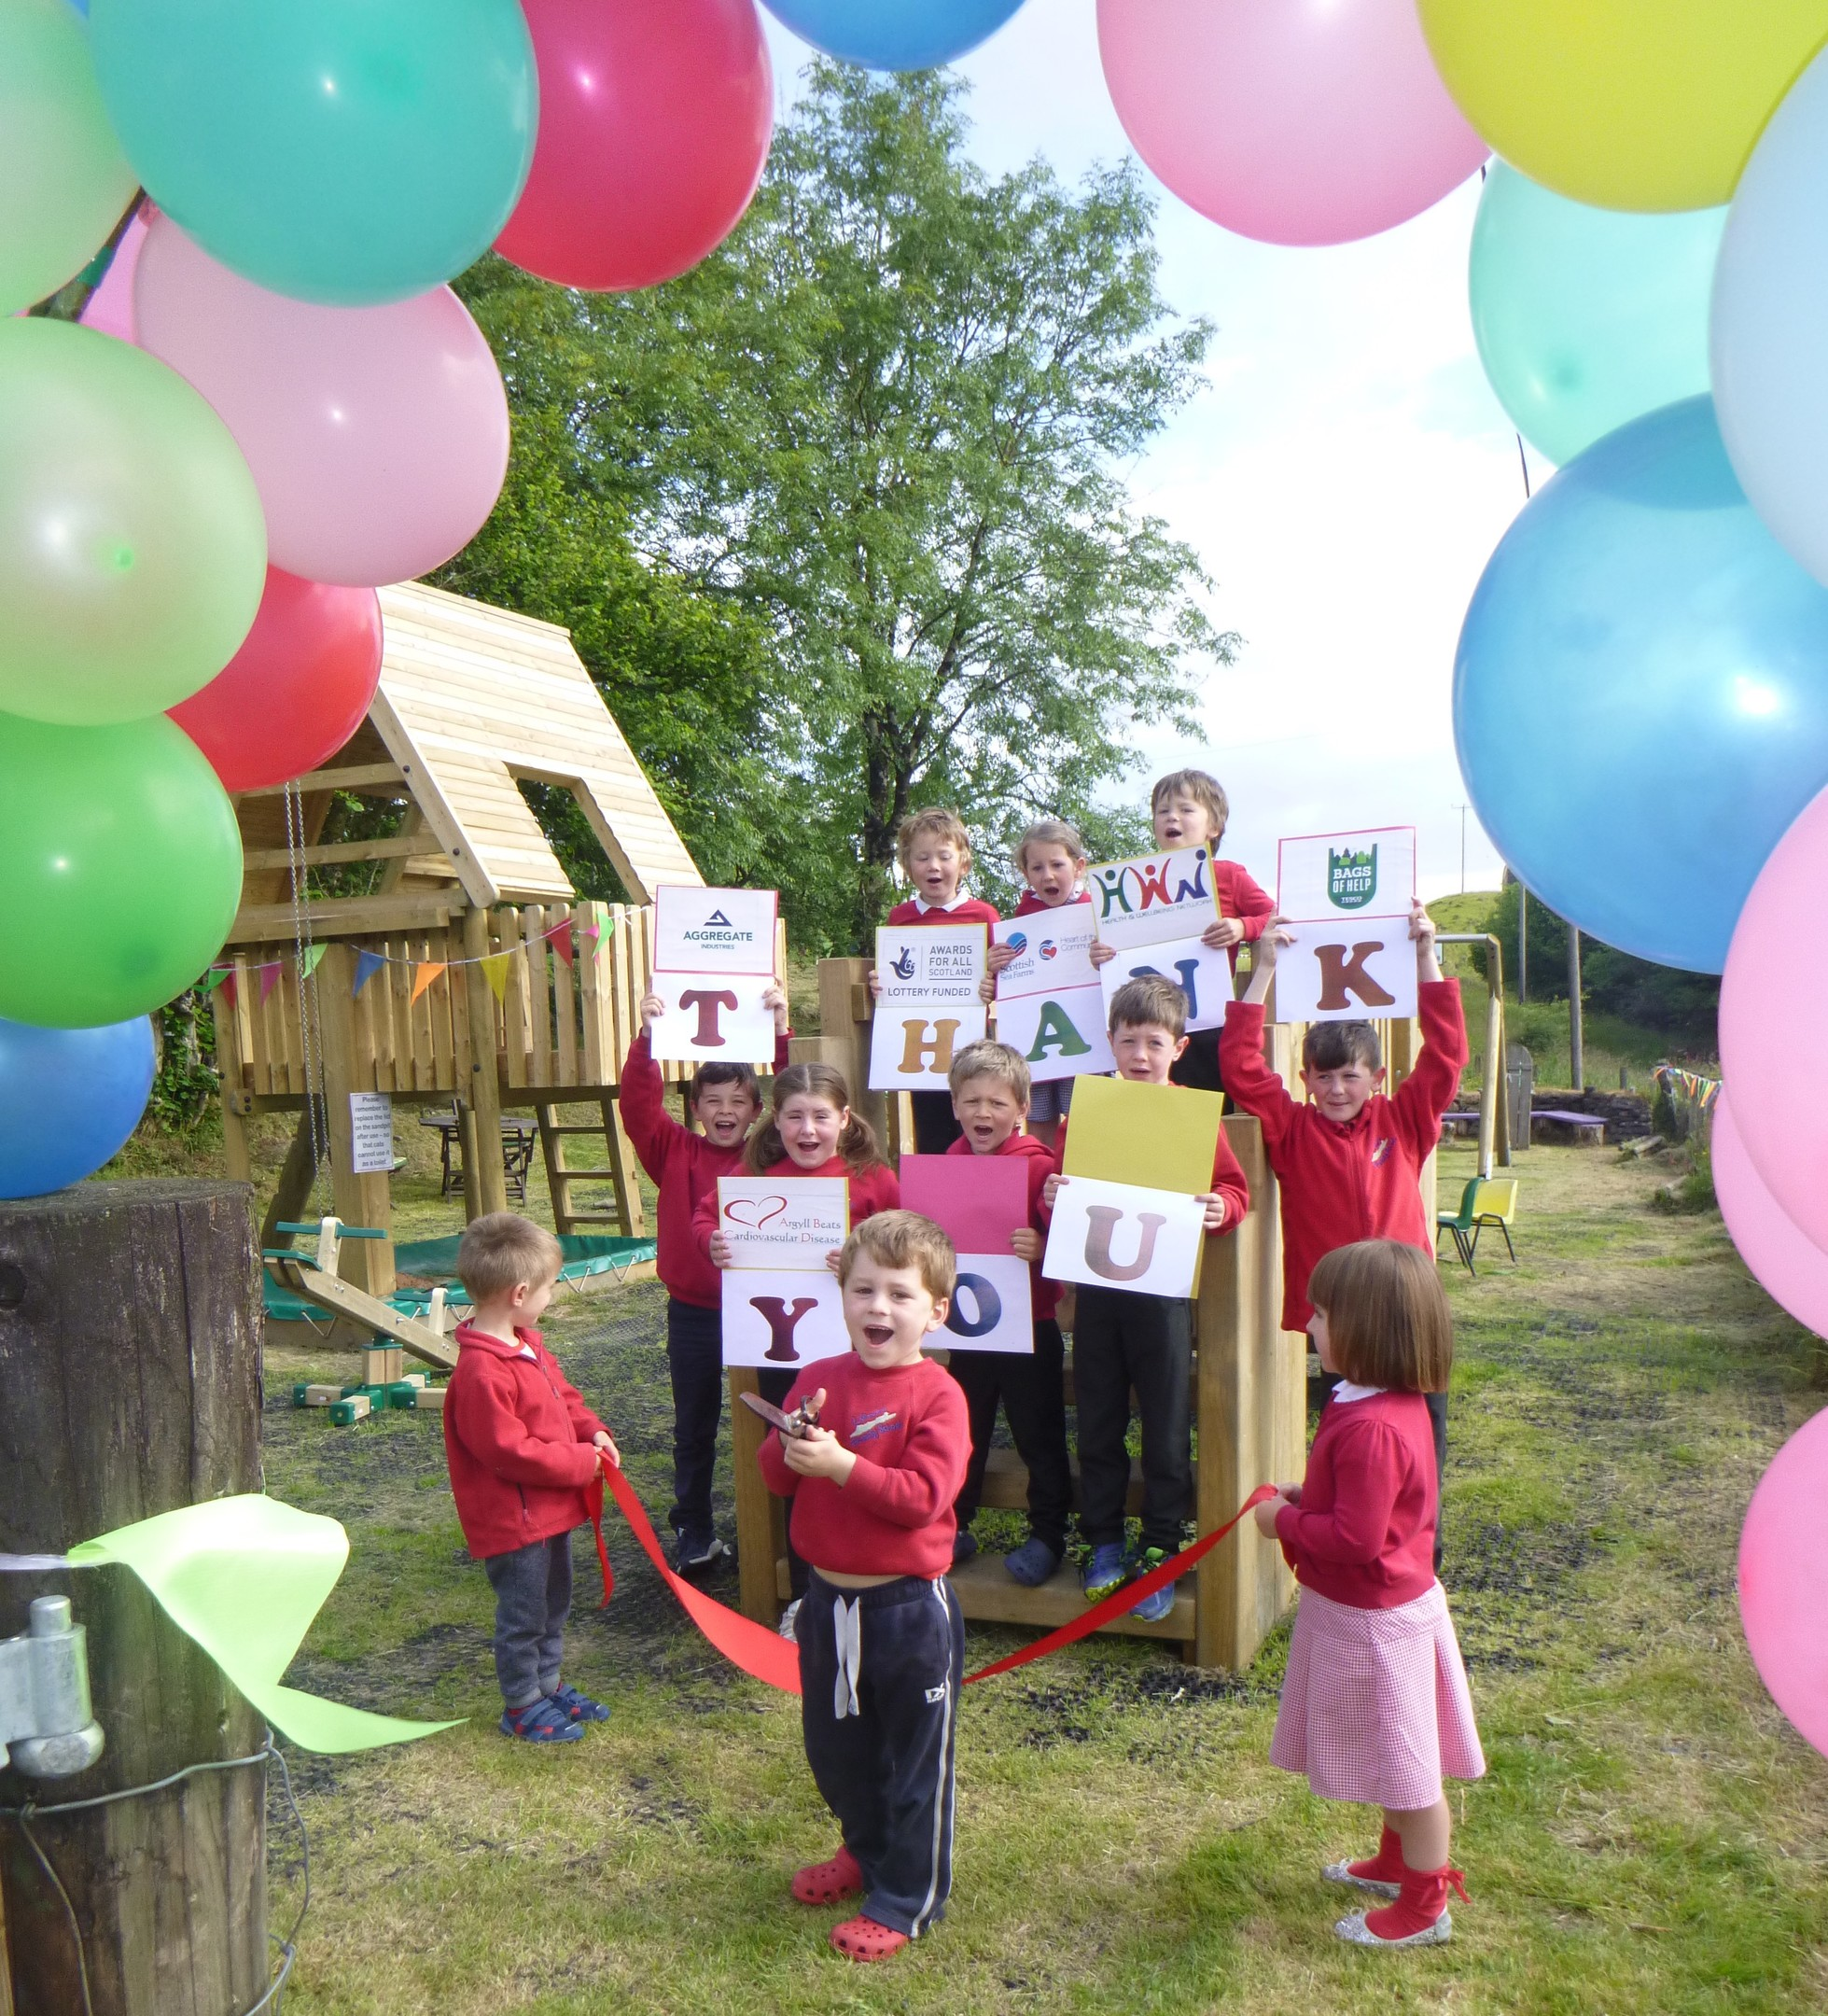 Lismore pupils say thanks for new playpark